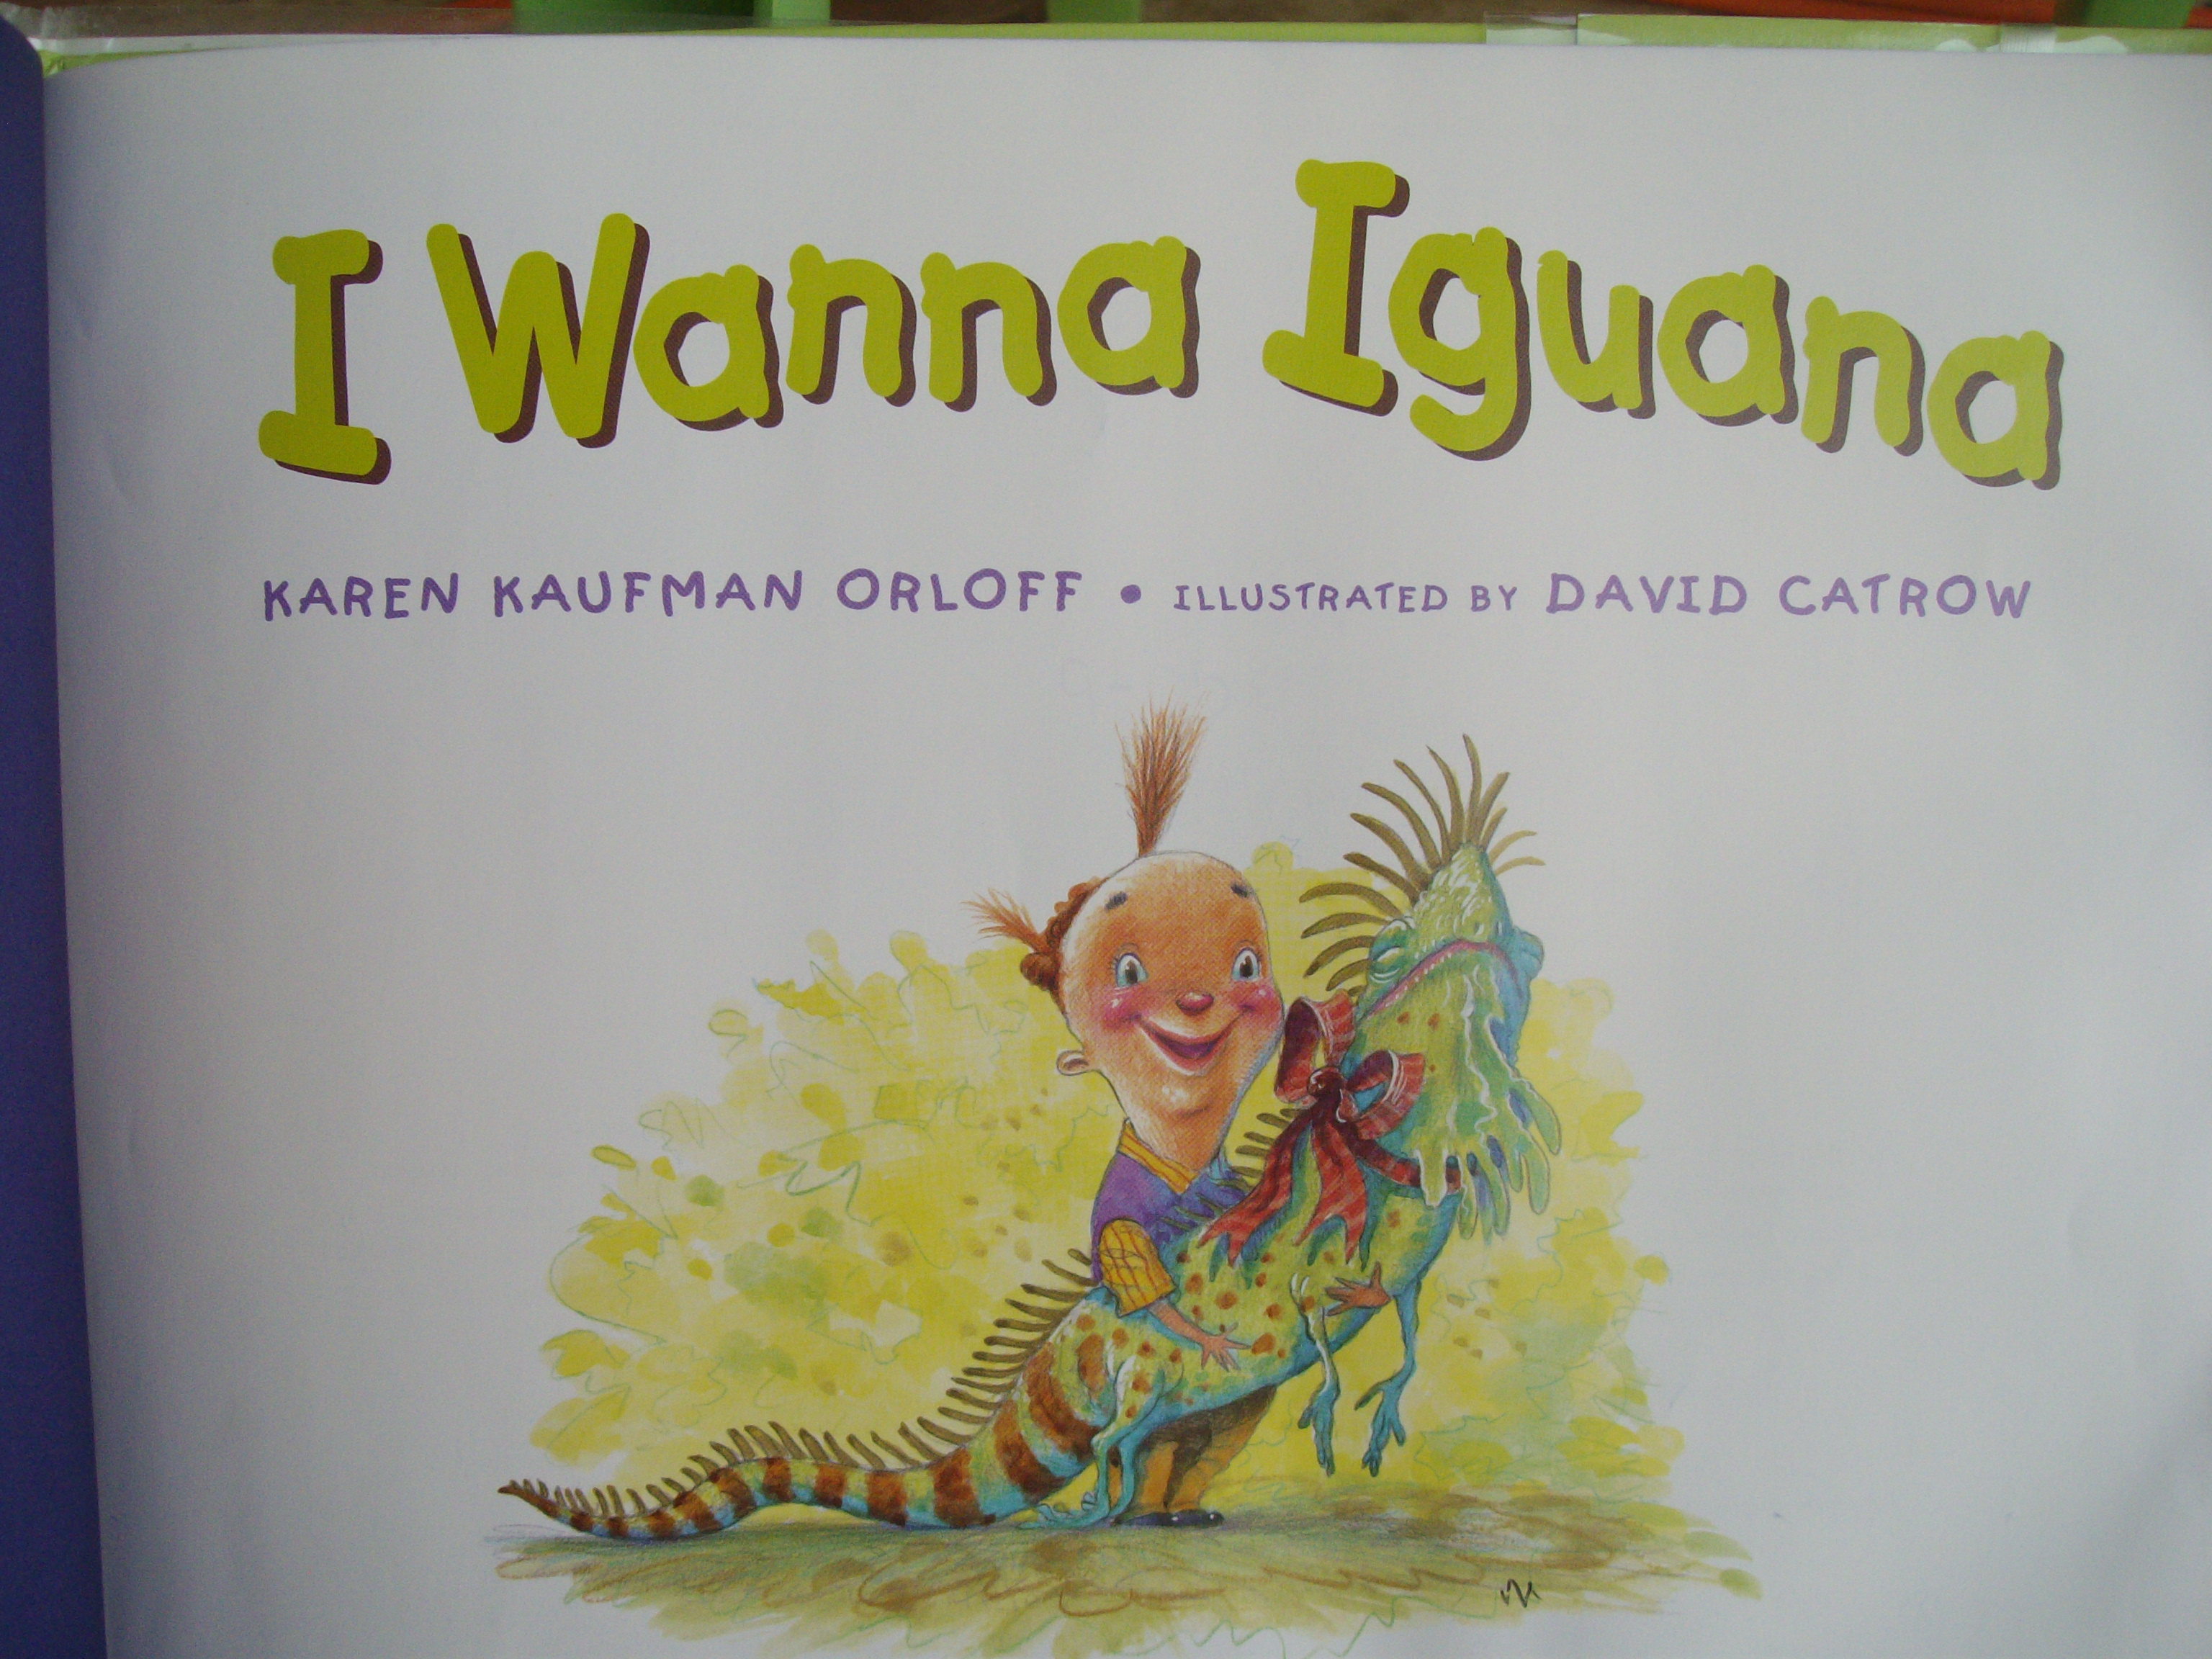 I Wanna Iguana By Karen Kaufman Orloff And David Catrow